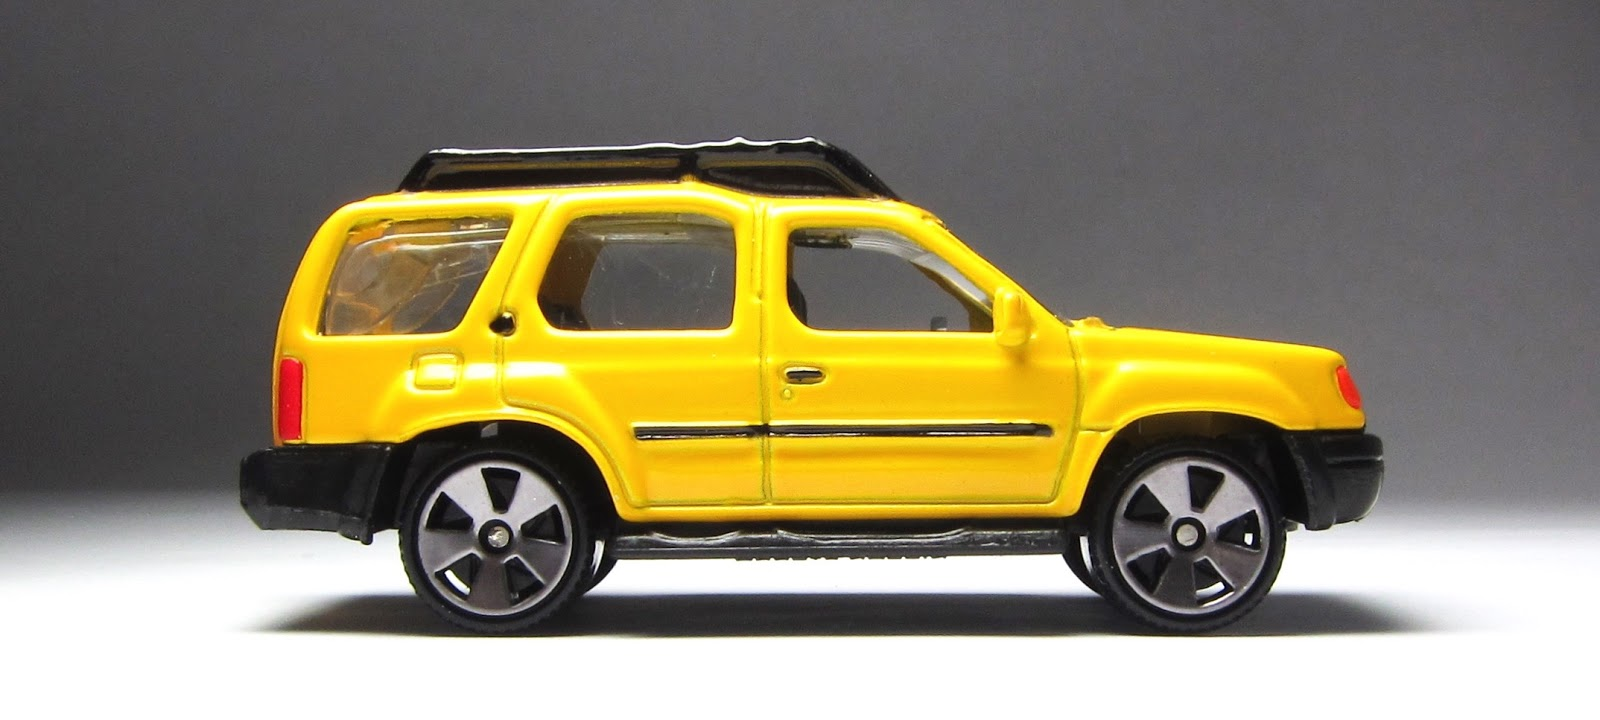 The last golden age of matchbox 20052006 superfast nissan xterra matchbox nissan xterra 20052005 superfast vanachro Images